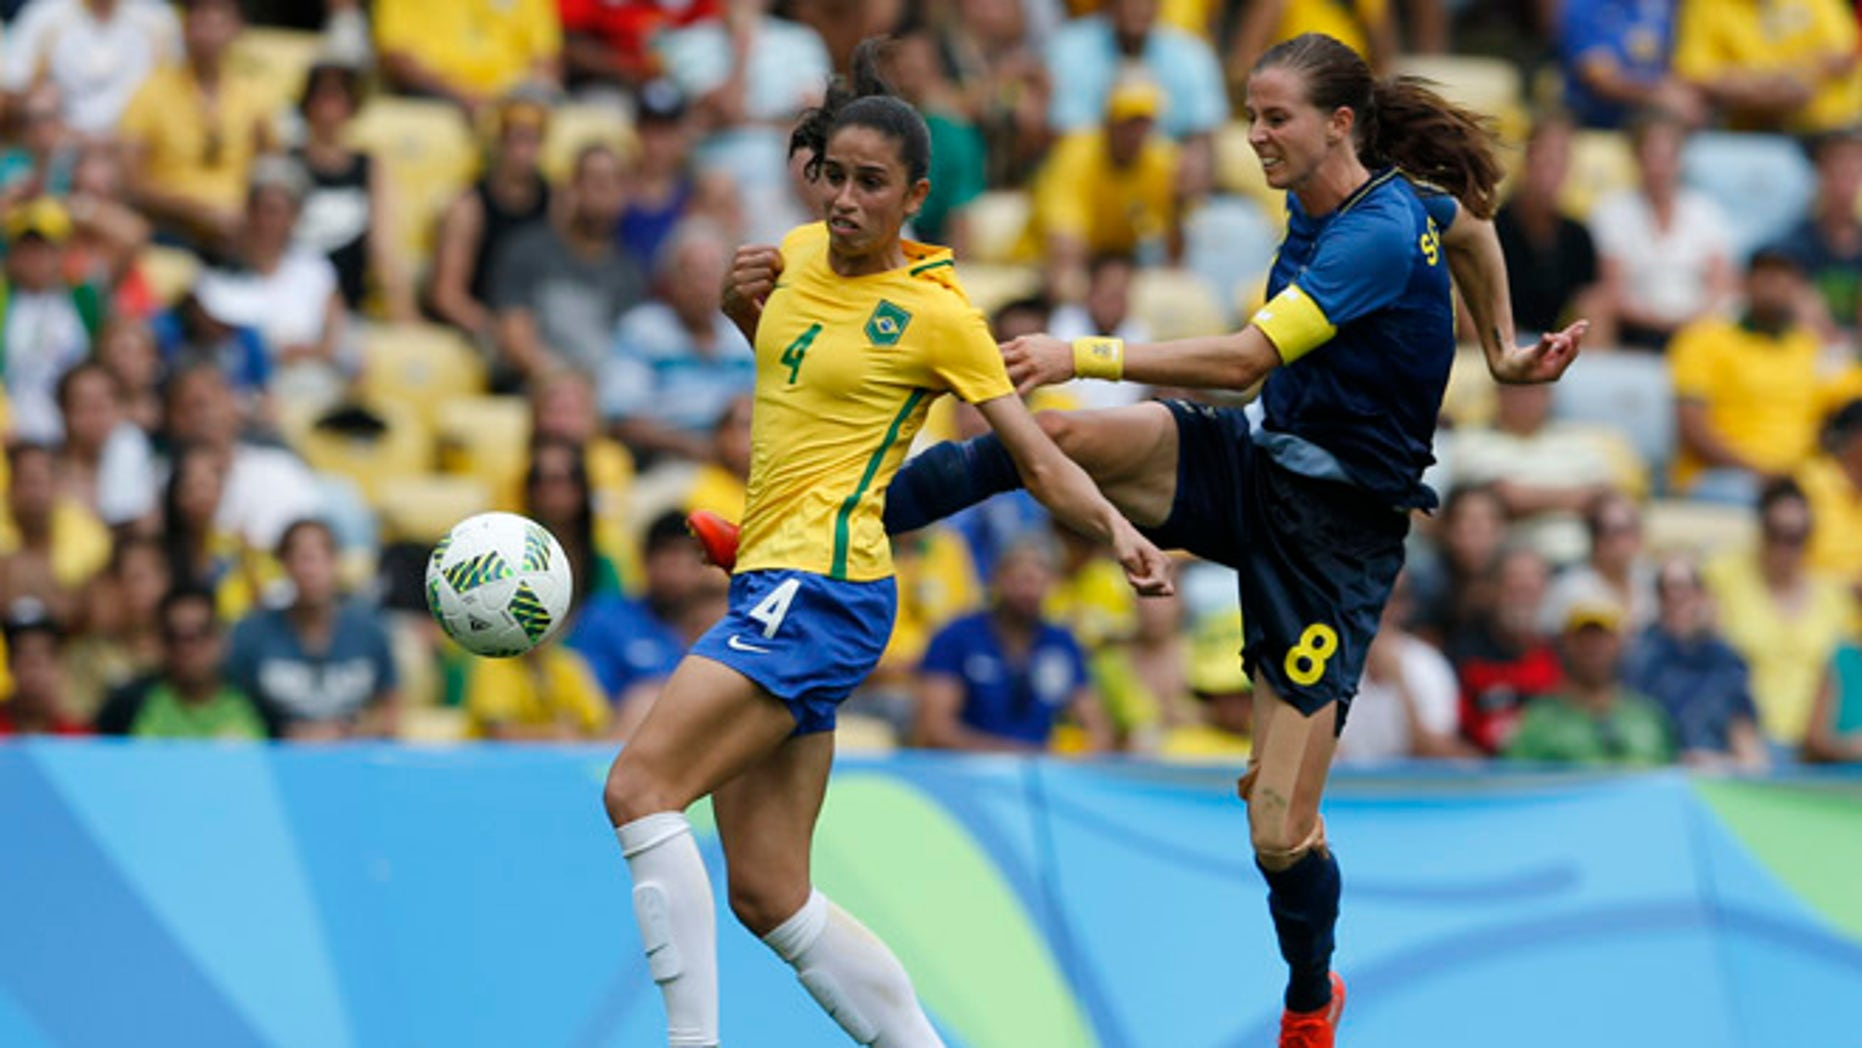 Sweden's Lotta Schelin, right, kicks the ball challenged by Brazil's Rafaelle during a extra time of a semi-final match of the women's Olympic football tournament between Brazil and Sweden at the Maracana stadium in Rio de Janeiro, Brazil, Tuesday Aug. 16, 2016.